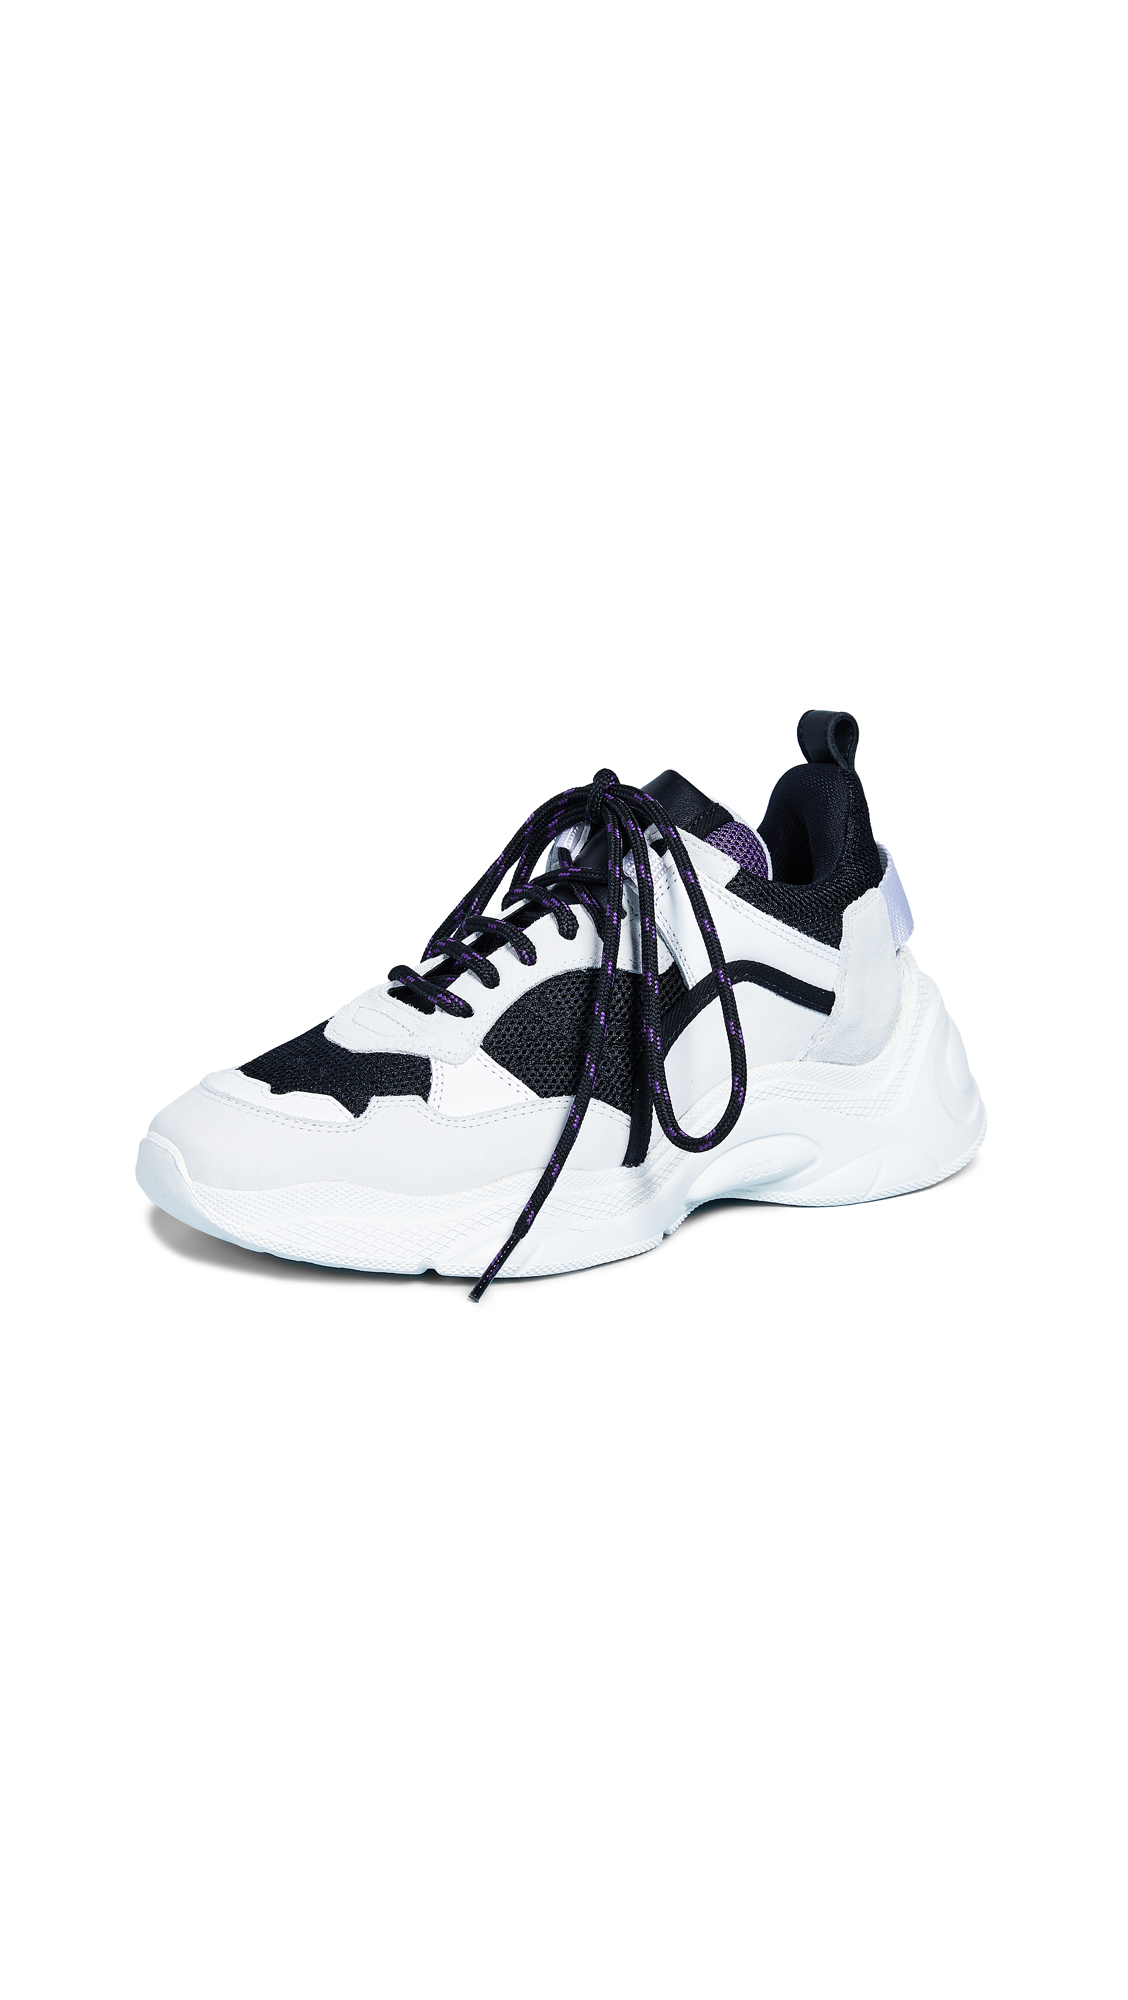 IRO Curverunner Sneakers - White/Purple